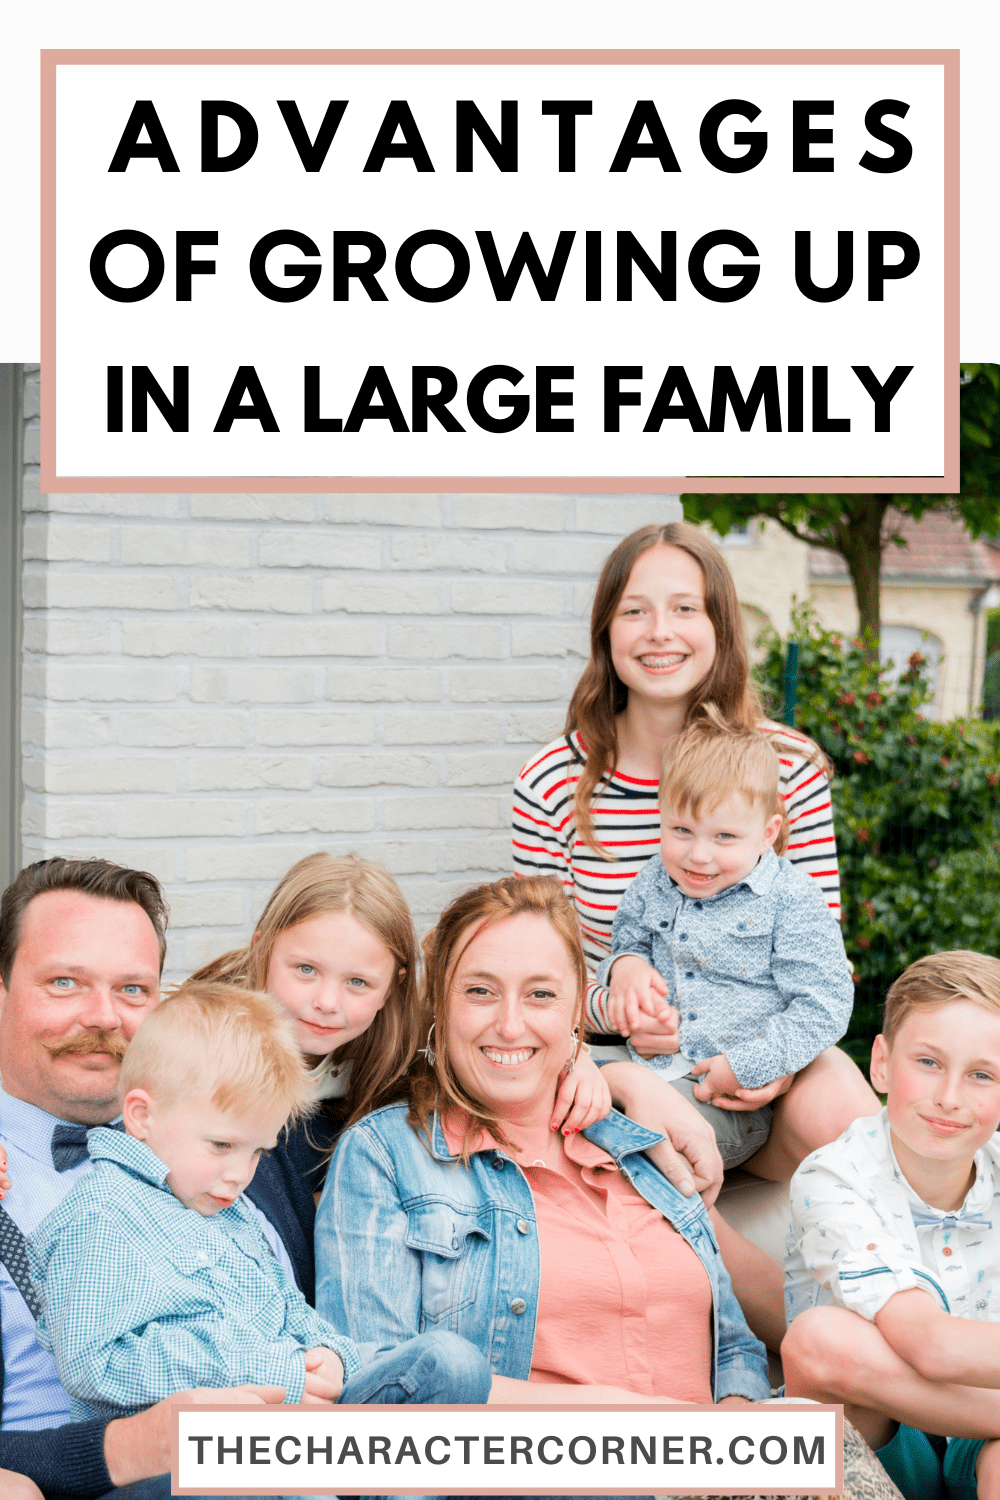 happy family text on image reads Here are Some of the Advantages Of Growing Up In A Large Family